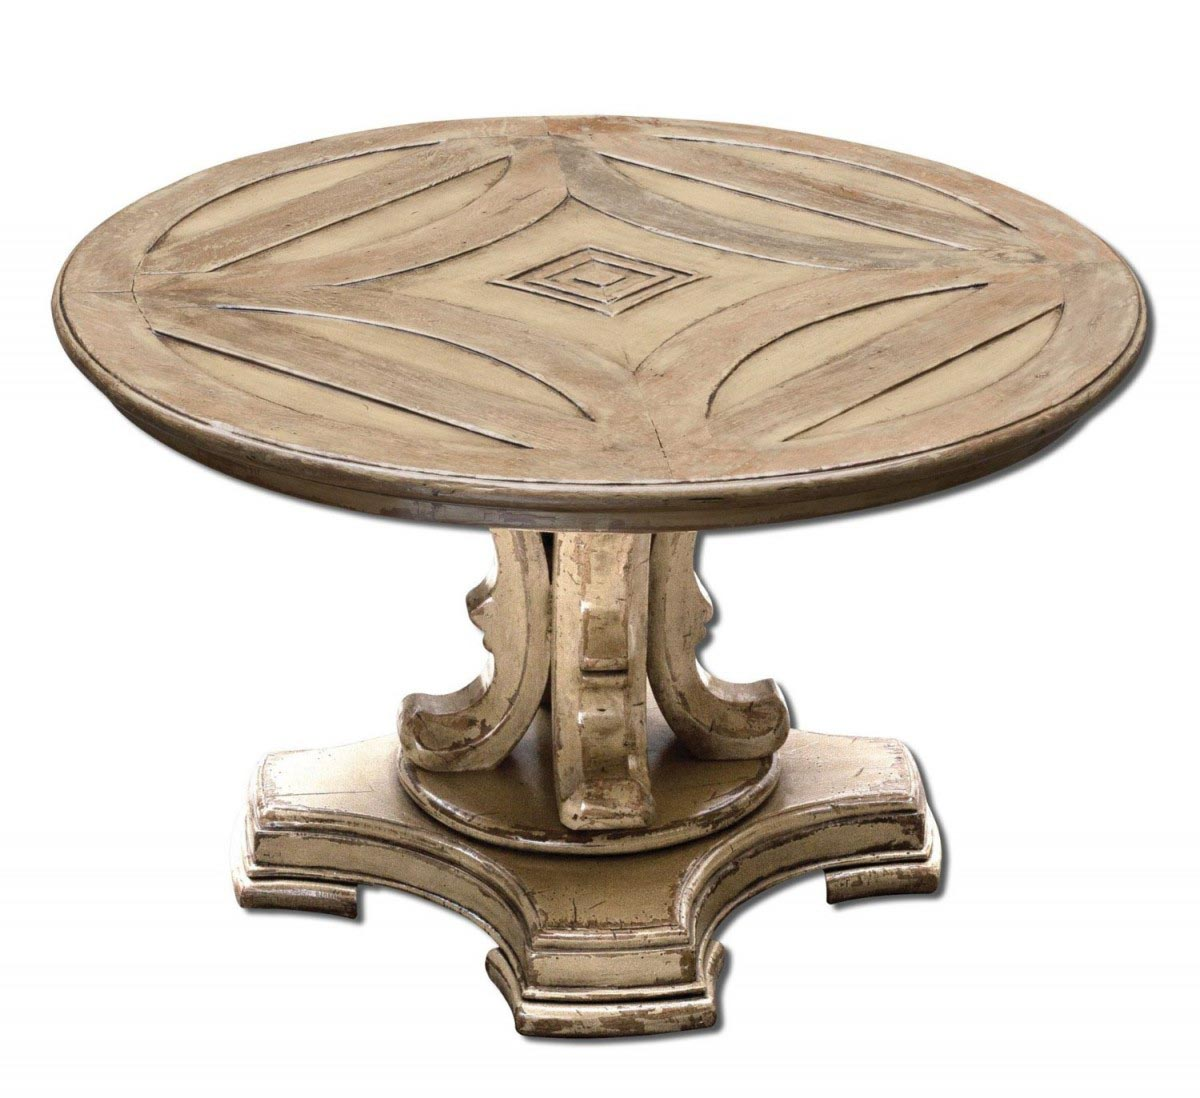 Round pedestal coffee table coffee table design ideas for Perfect round pedestal coffee table ideas